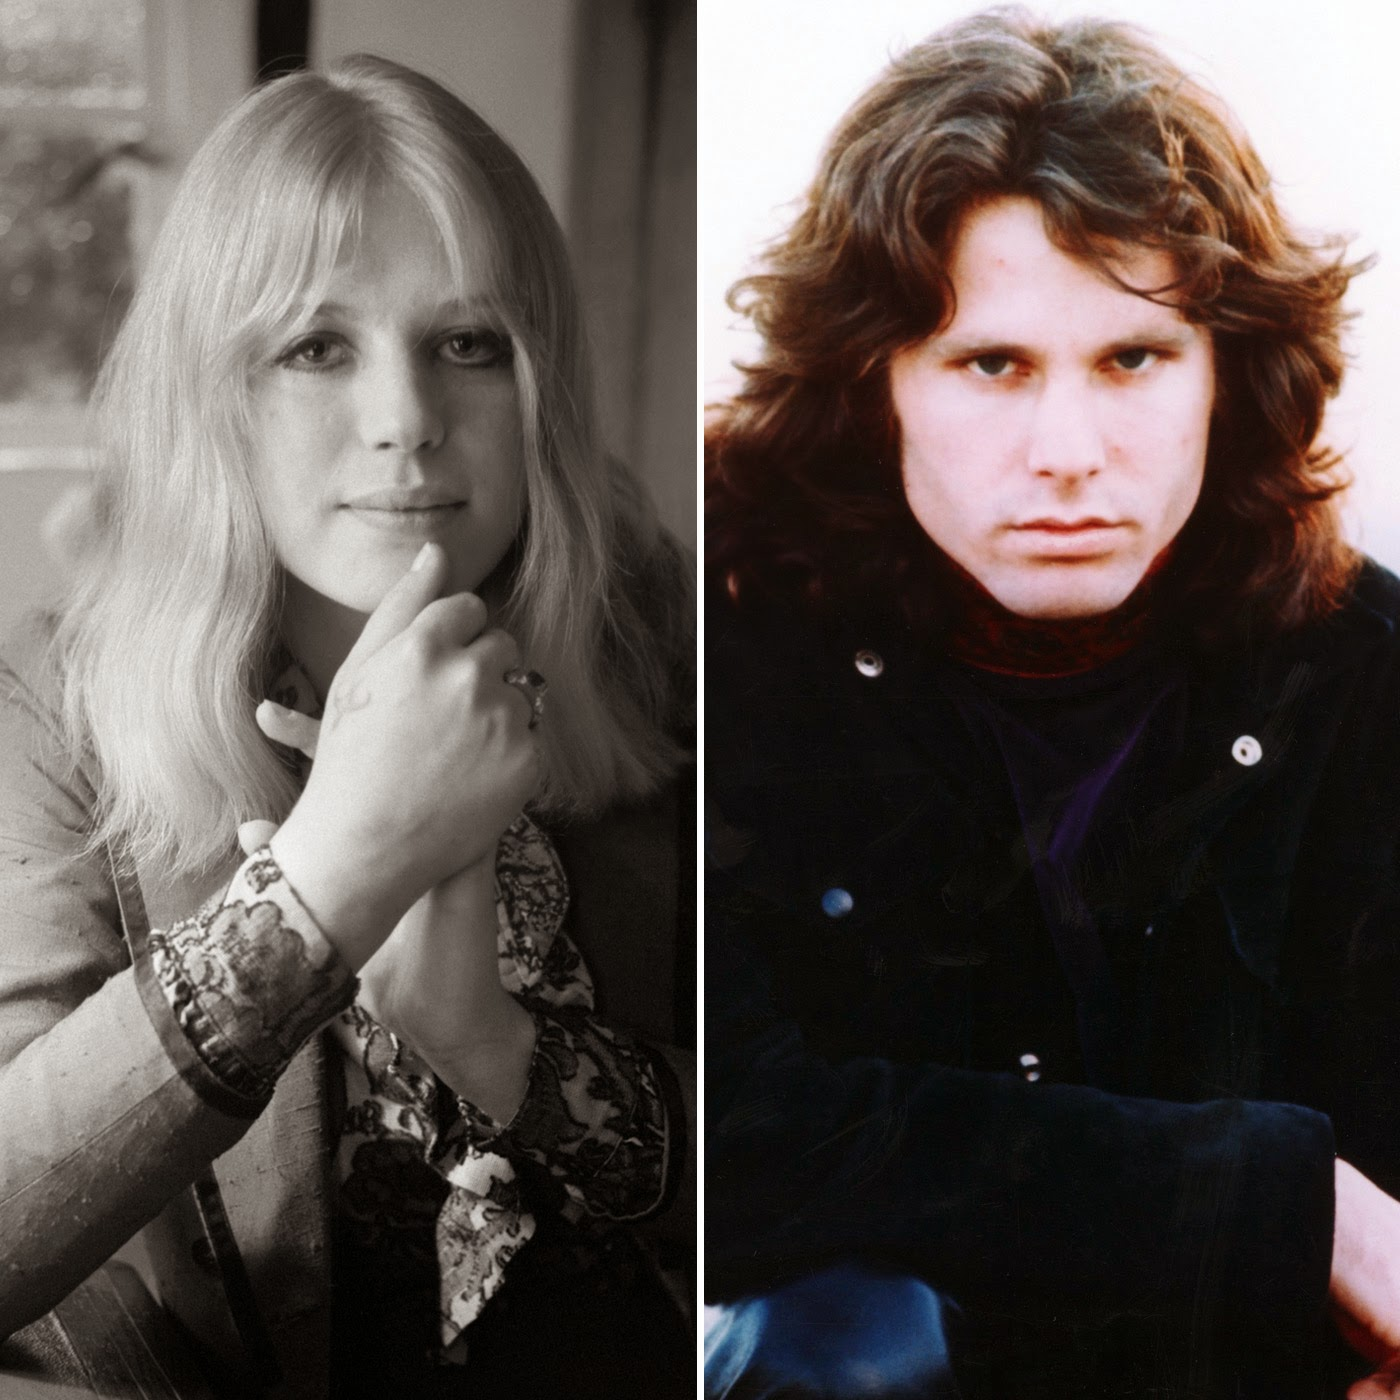 Chatter Busy: Mick Jagger's Ex-Girlfriend Marianne Faithfull Reveals Who Killed Jim Morrison (PHOTO)